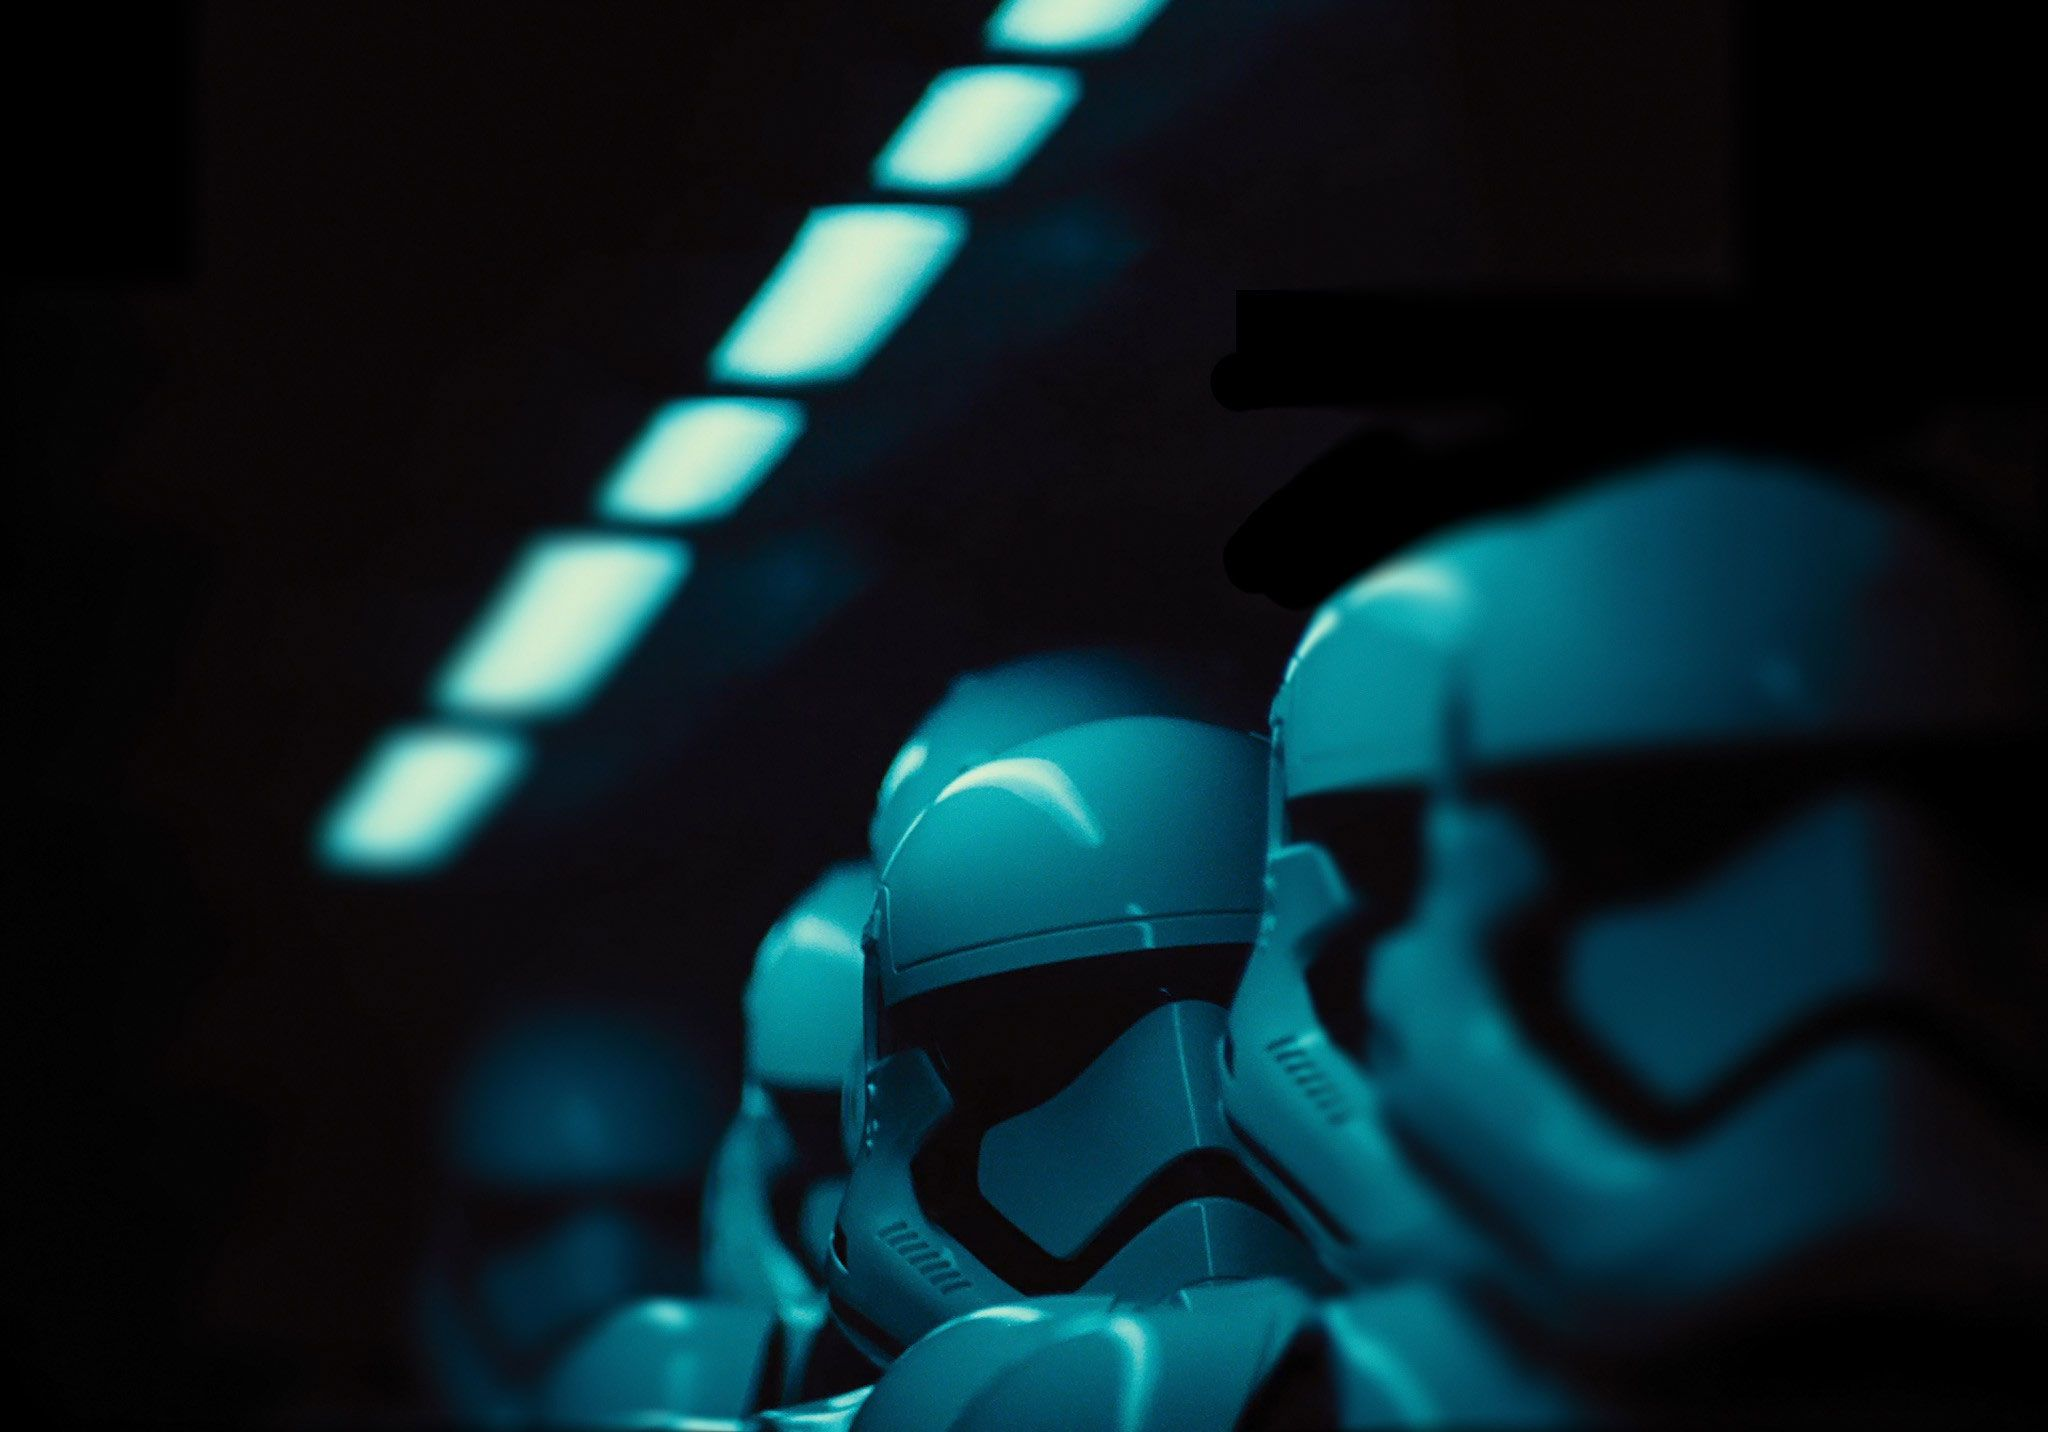 Star Wars The Force Awakens Stormtrooper Wallpaper